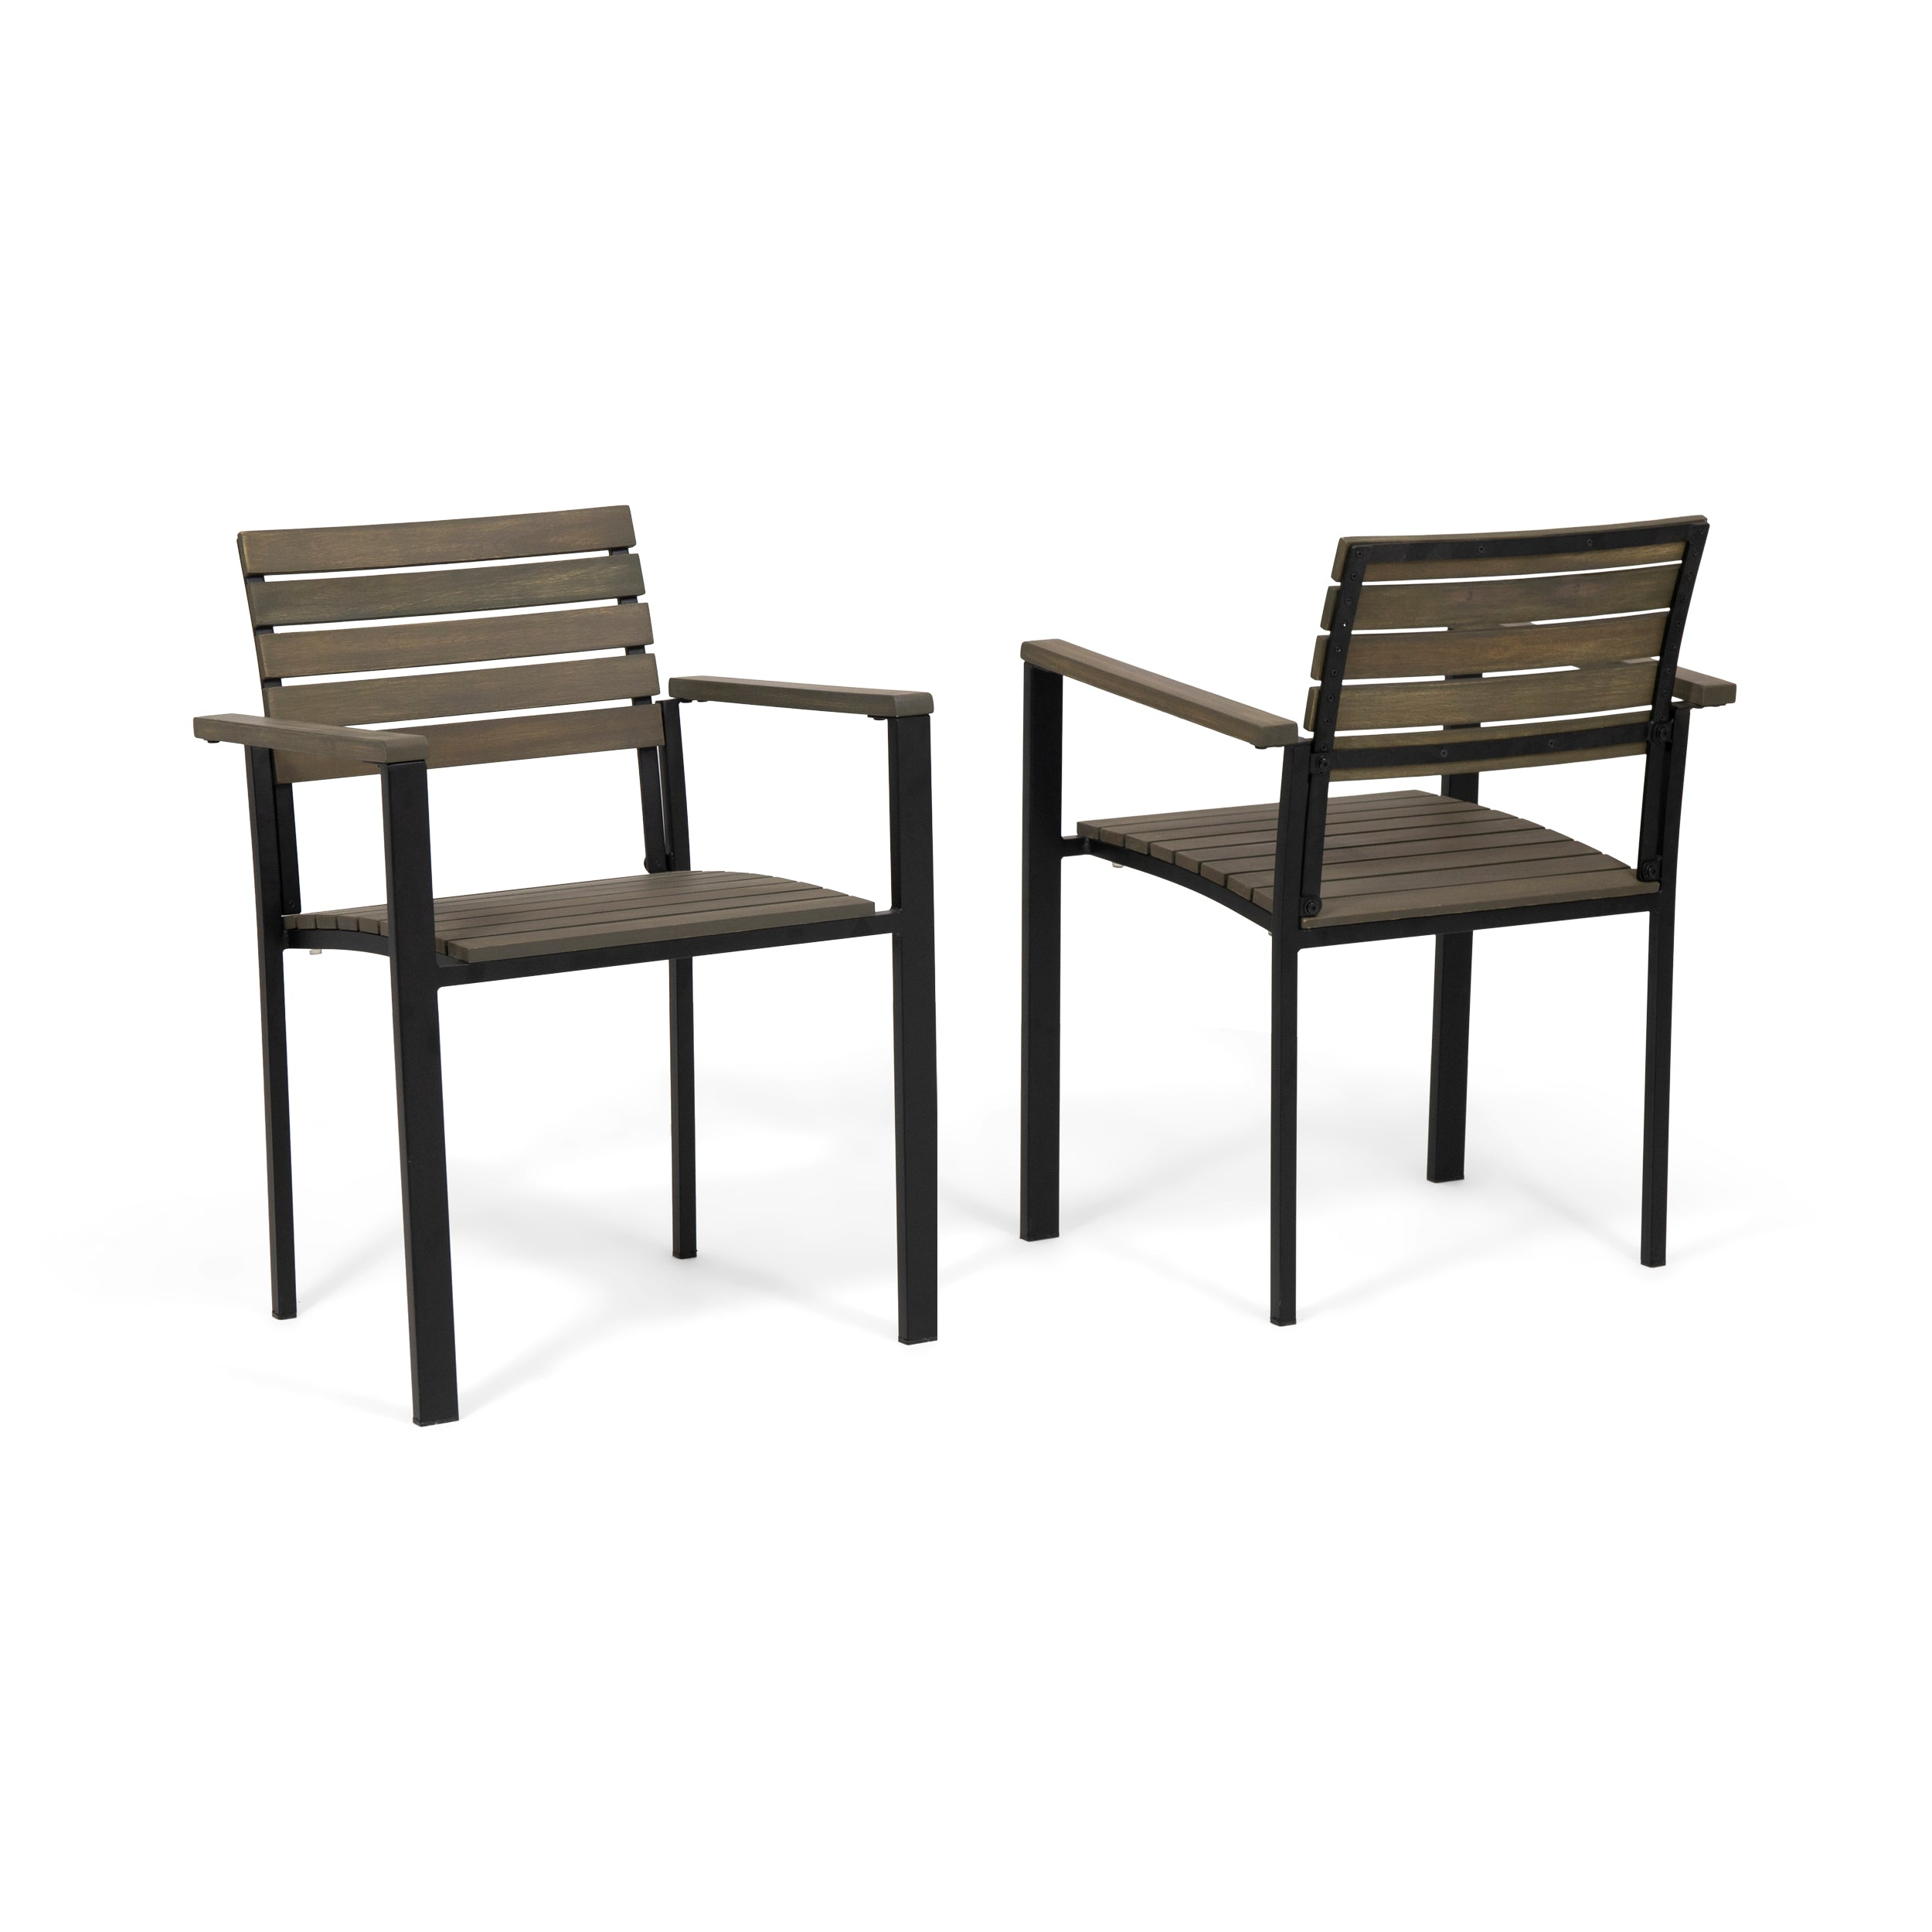 Alberta Outdoor Wood and Iron Dining Chairs Set of 2